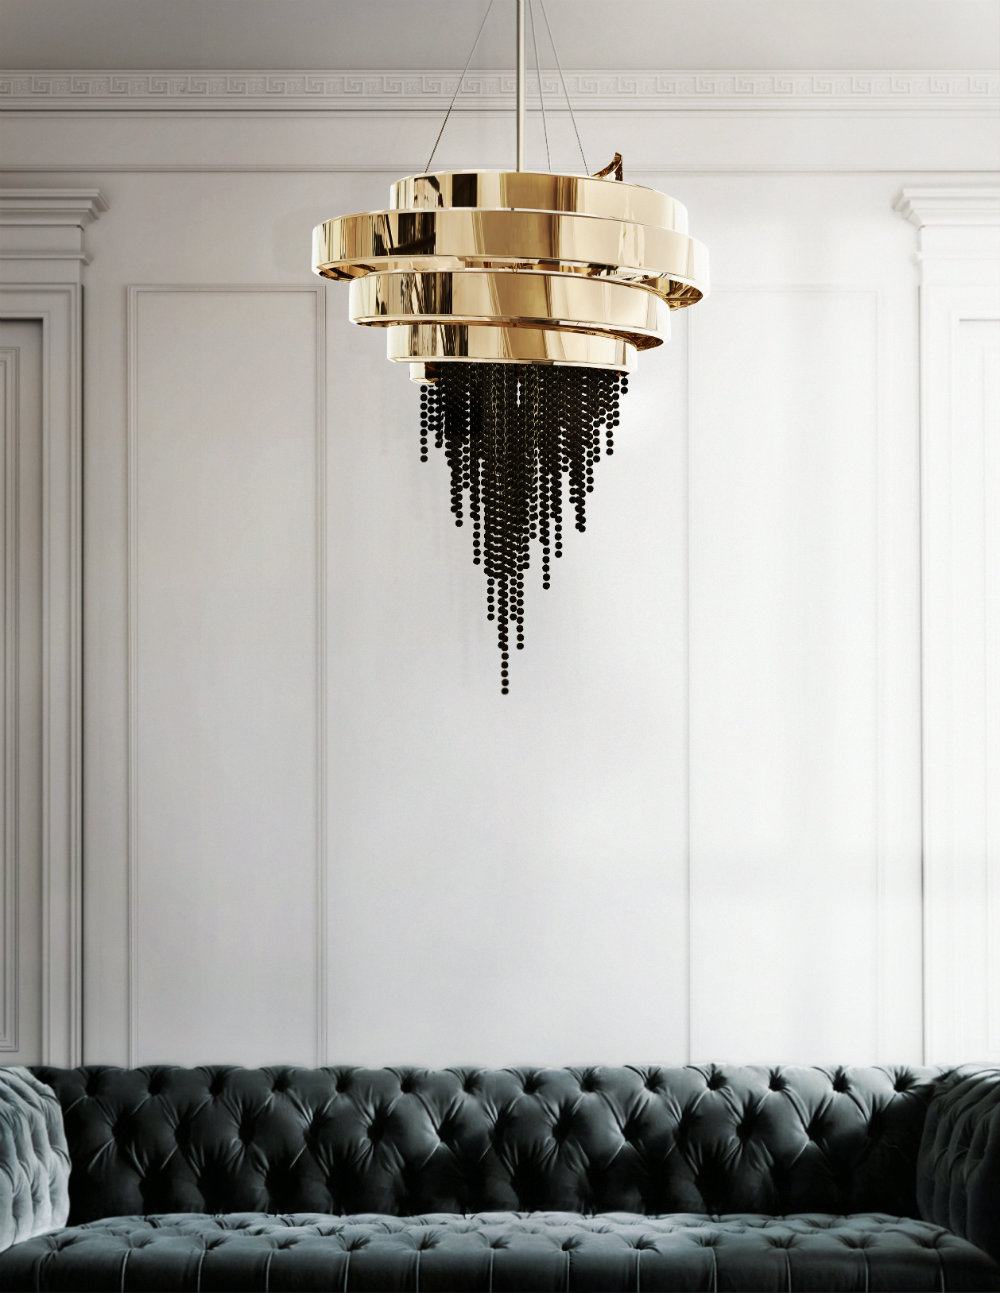 Dramatic Chandeliers You Need In Your Home 05 dramatic chandeliers Dramatic Chandeliers You Need In Your Home Dramatic Chandeliers You Need In Your Home 05